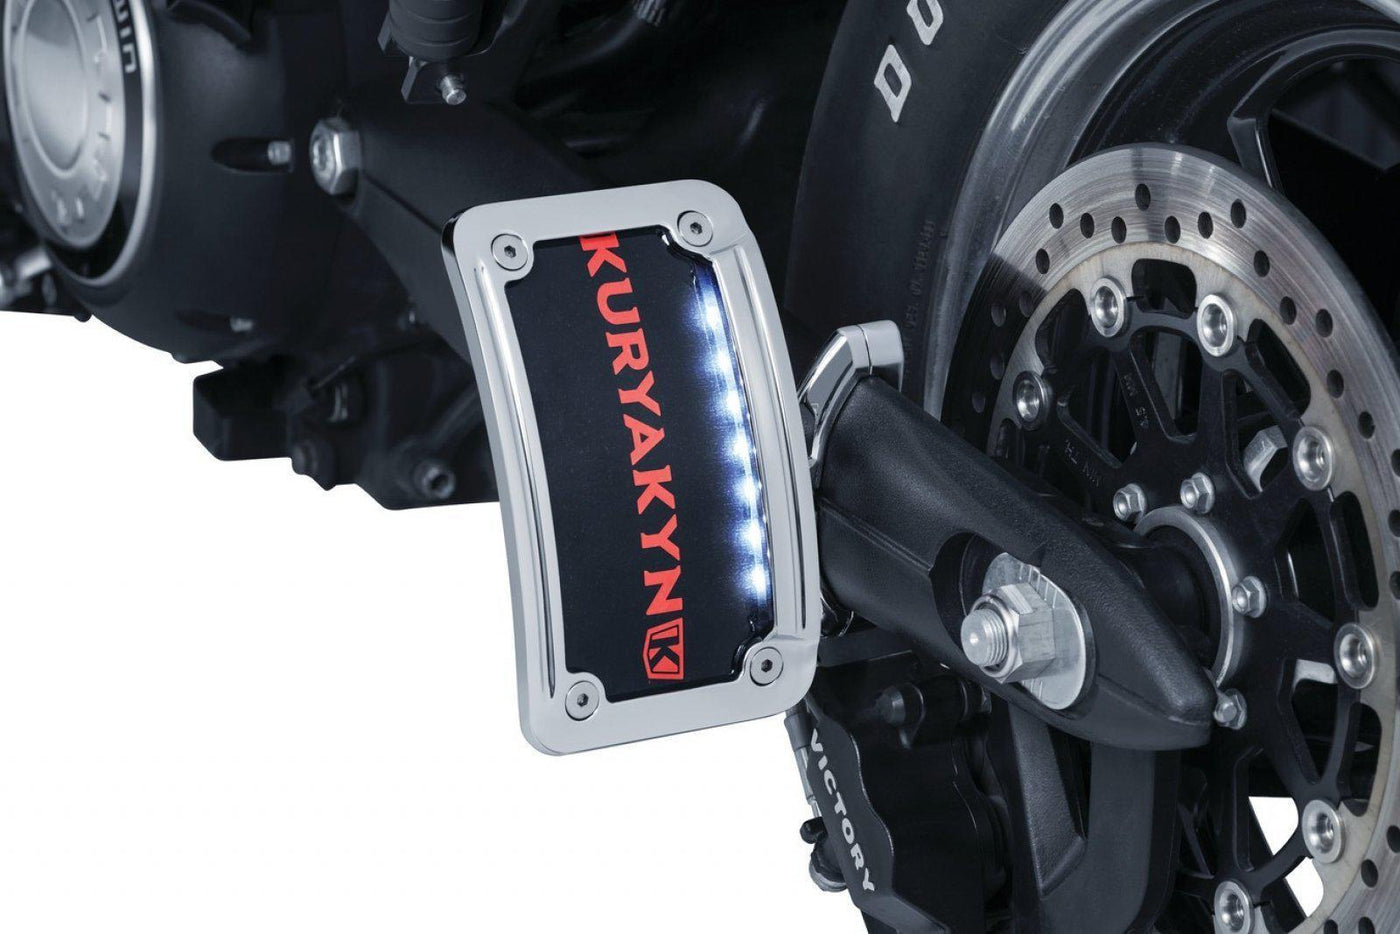 Vertical Side Mount Chrome Kuryakyn 3190 Motorcycle Accent Accessory Nova Curved License Plate Holder and Frame with Wraparound LED Illumination Lighting